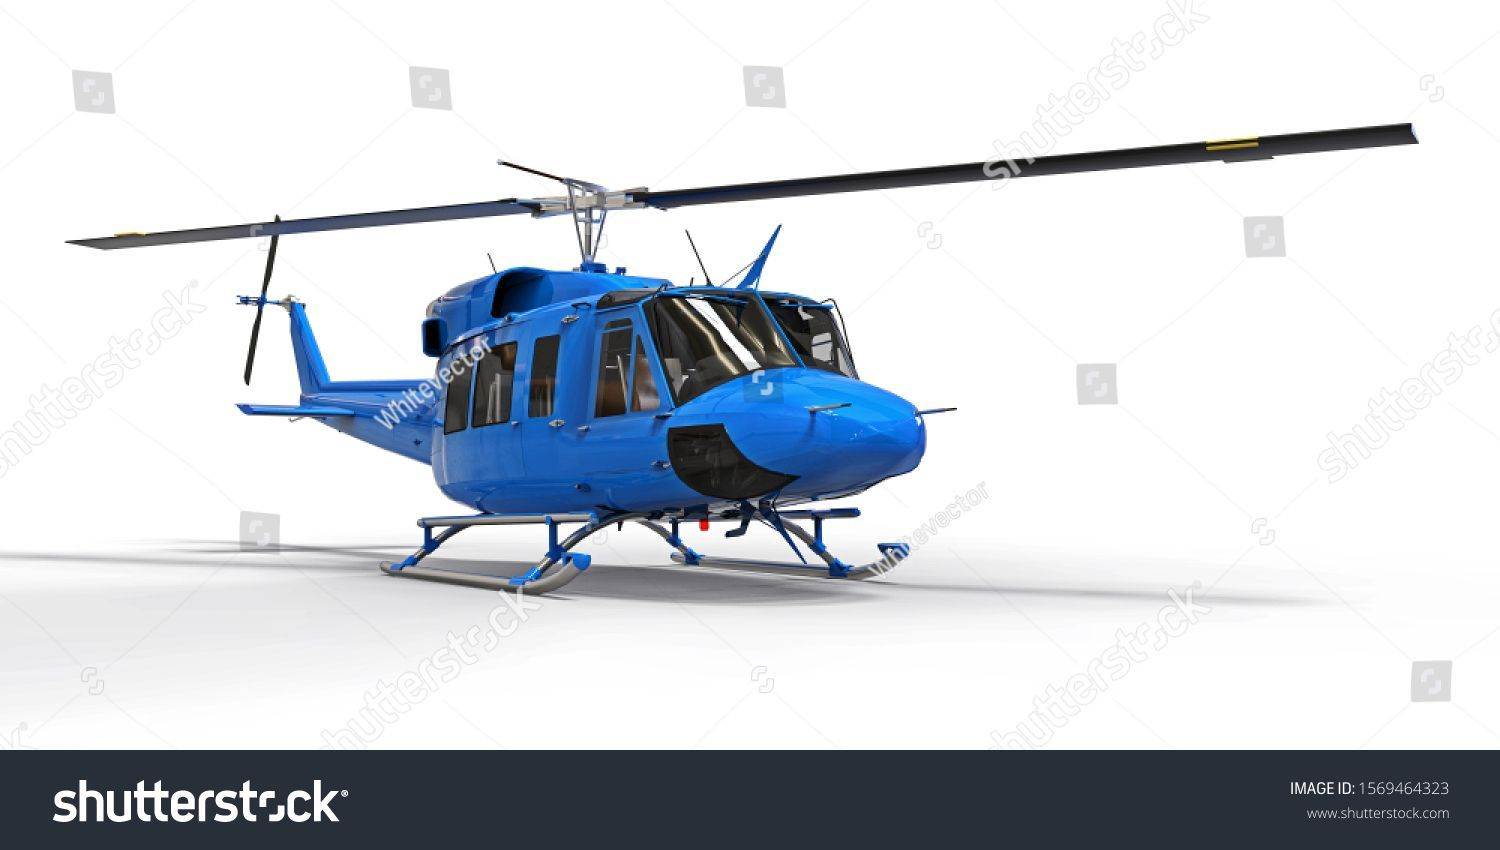 Blue small military transport helicopter on white isolated background The helicopter rescue service Air taxi Helicopter for police fire ambulance and rescue service 3d il...